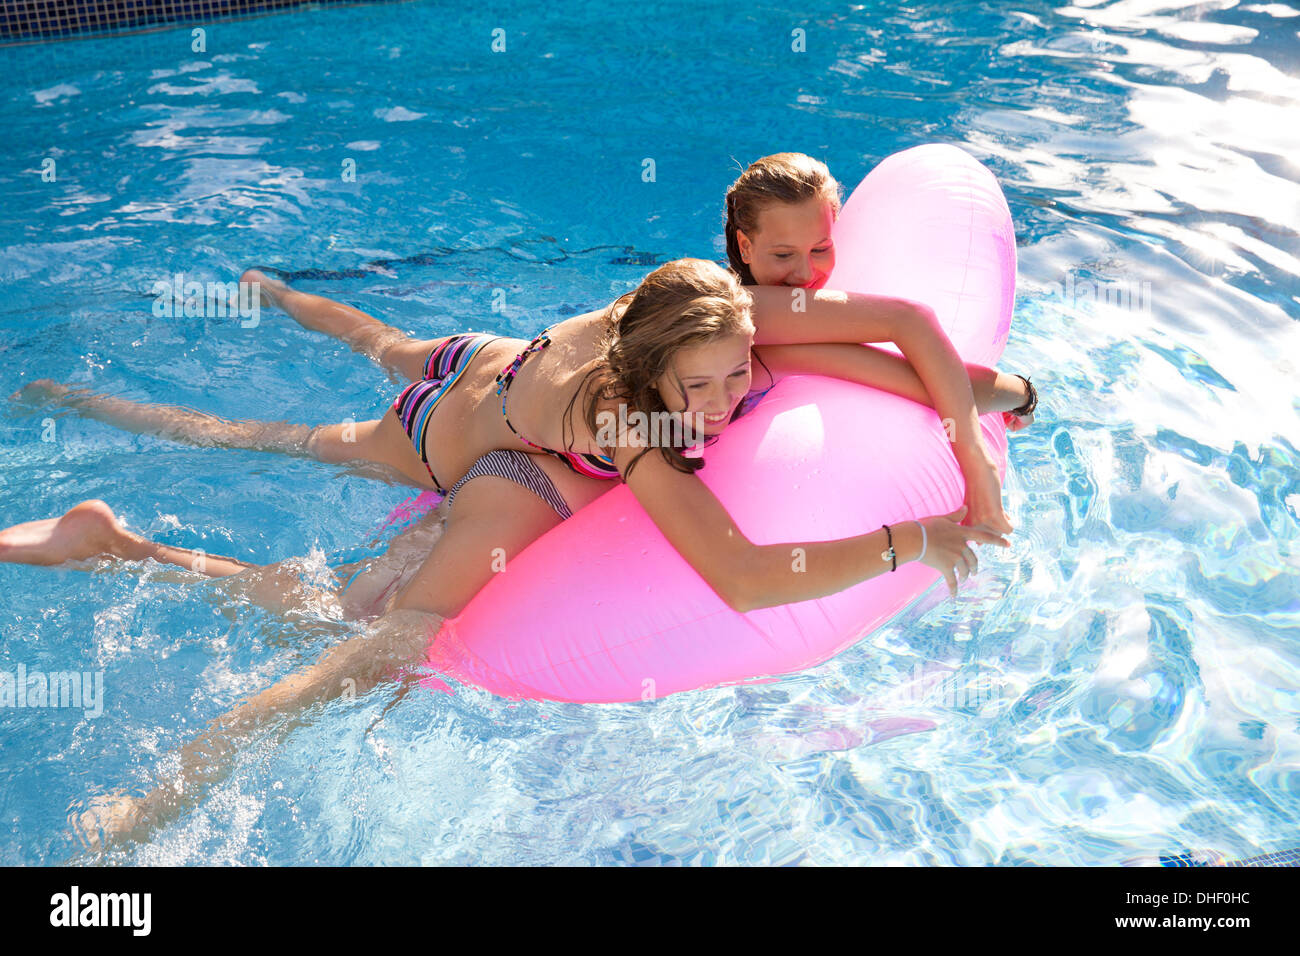 Two teenage girls holding onto air bed in swimming pool - Stock Image